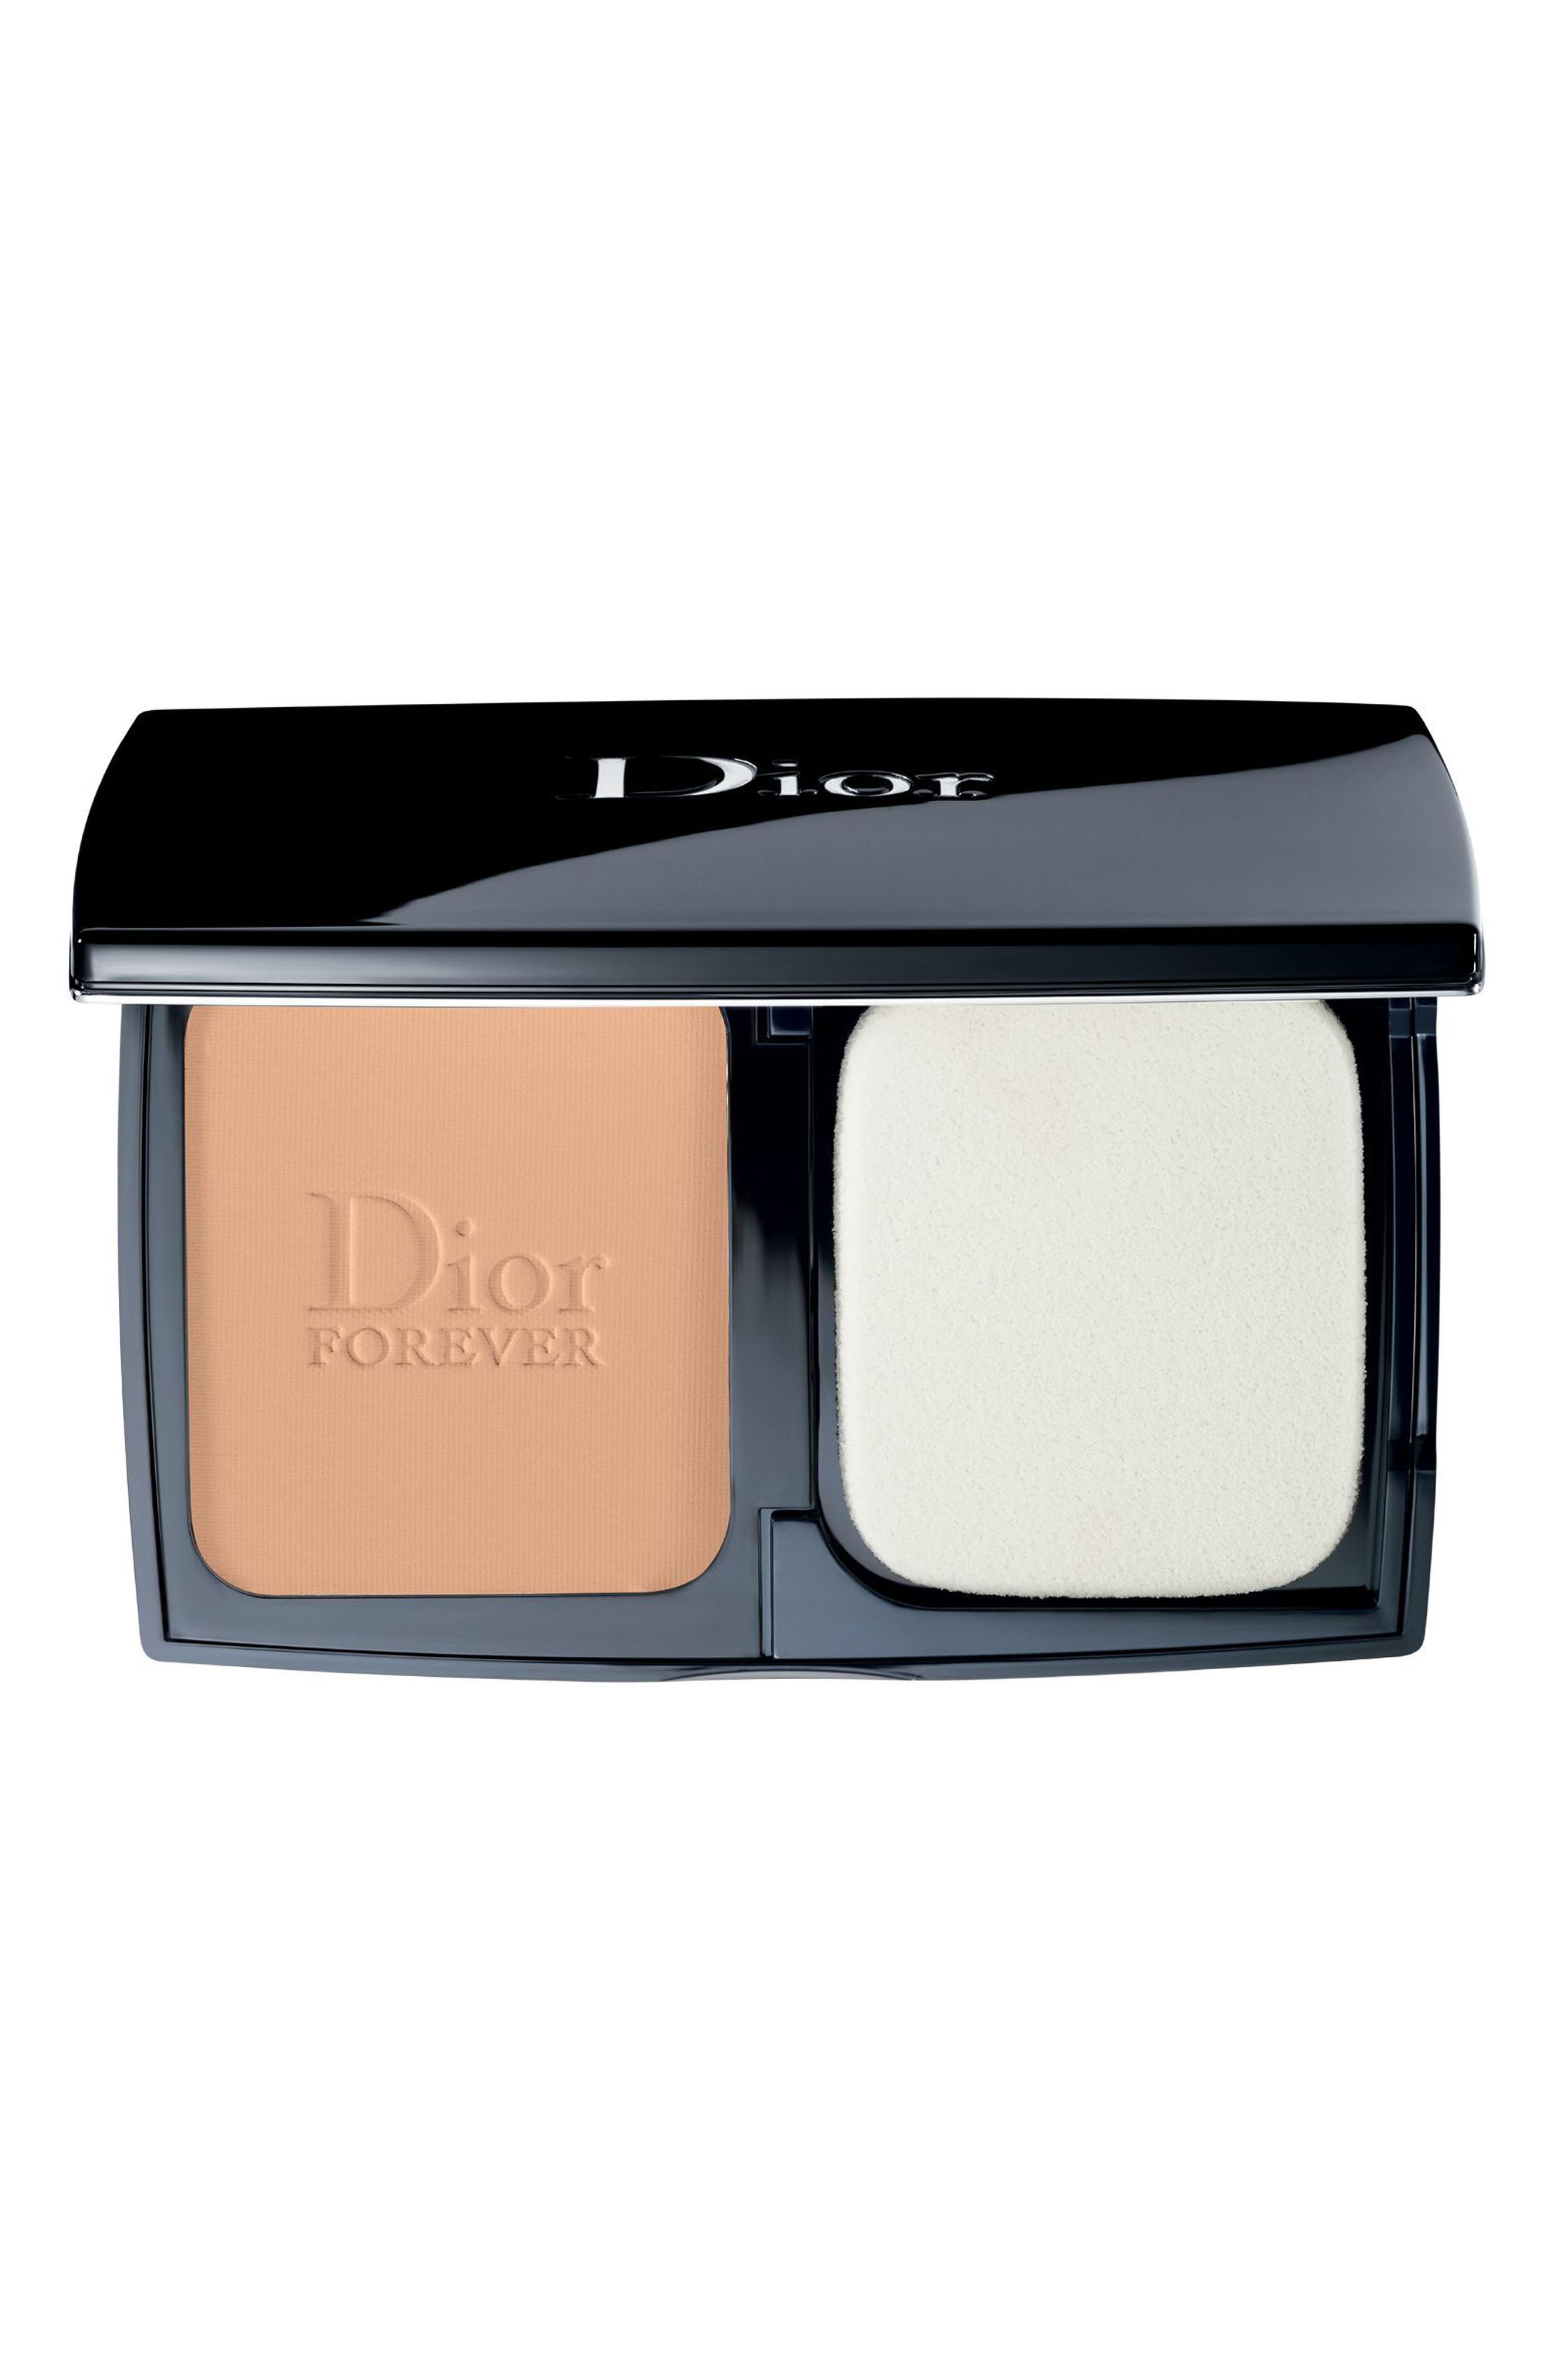 Dior Diorskin Forever Extreme Control - 032 Rosy Beige